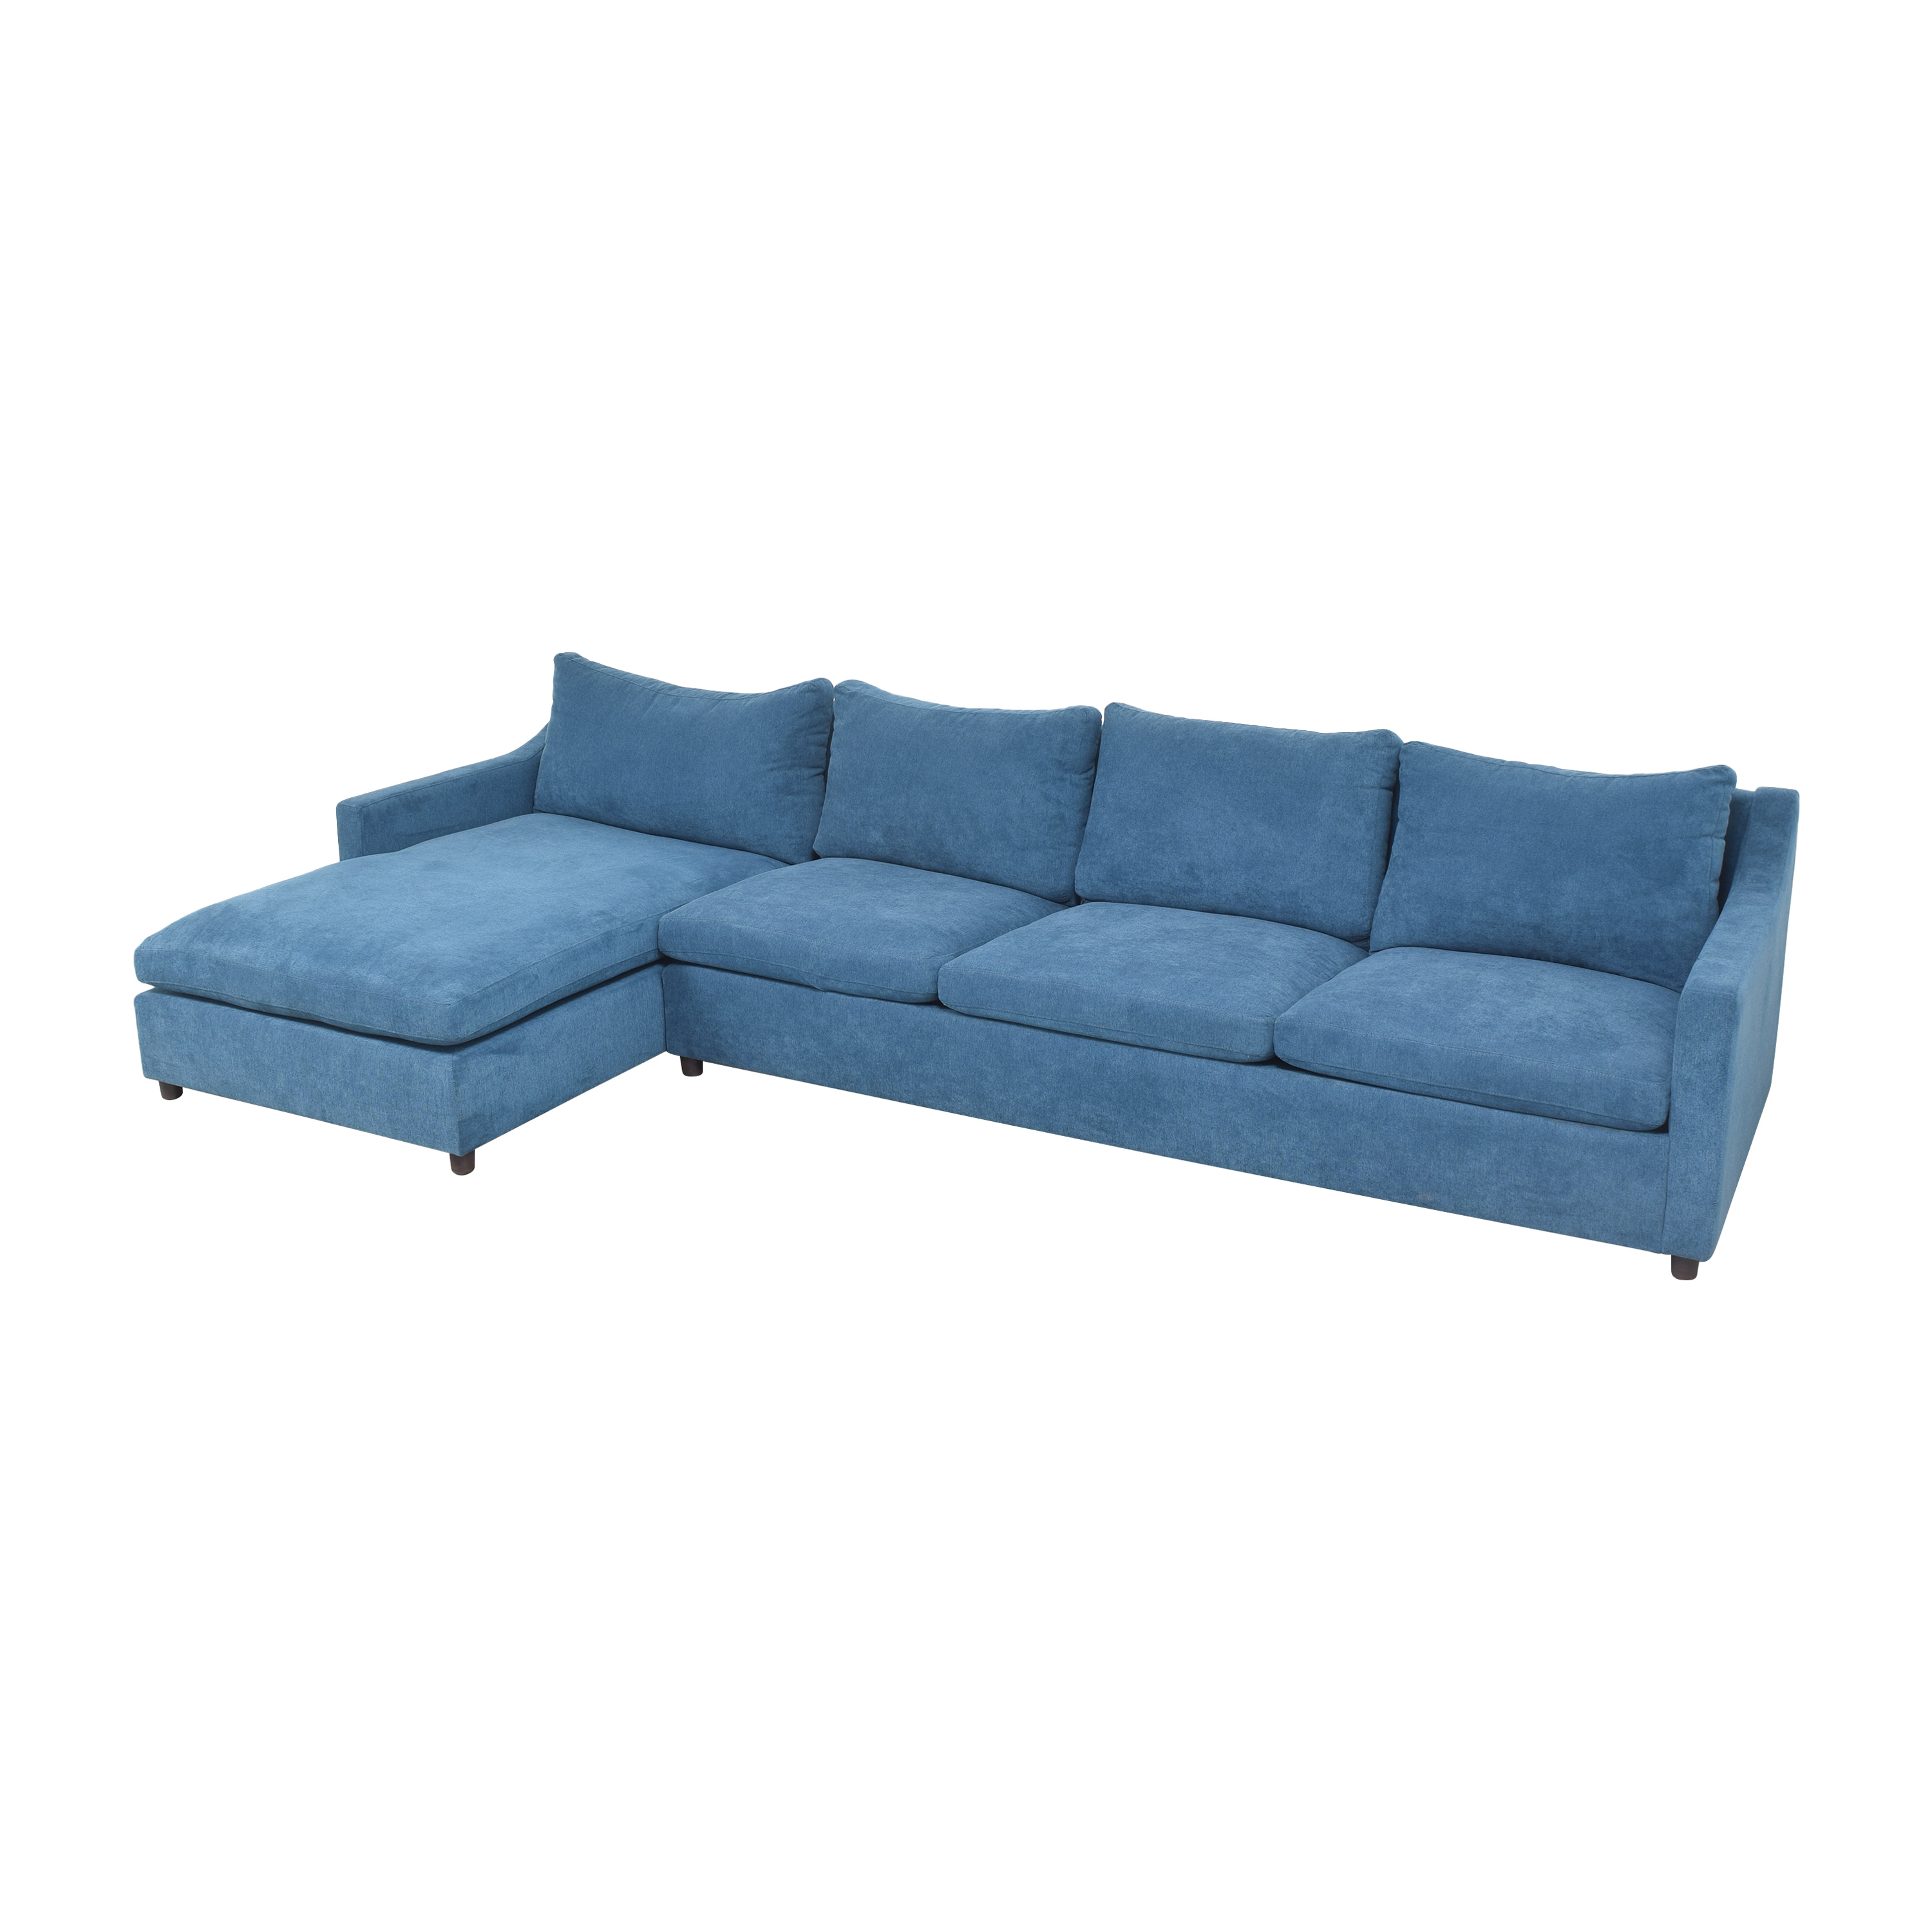 BenchMade Modern BenchMade Modern Johnny Homemaker Sectional Sofa with Chaise ct